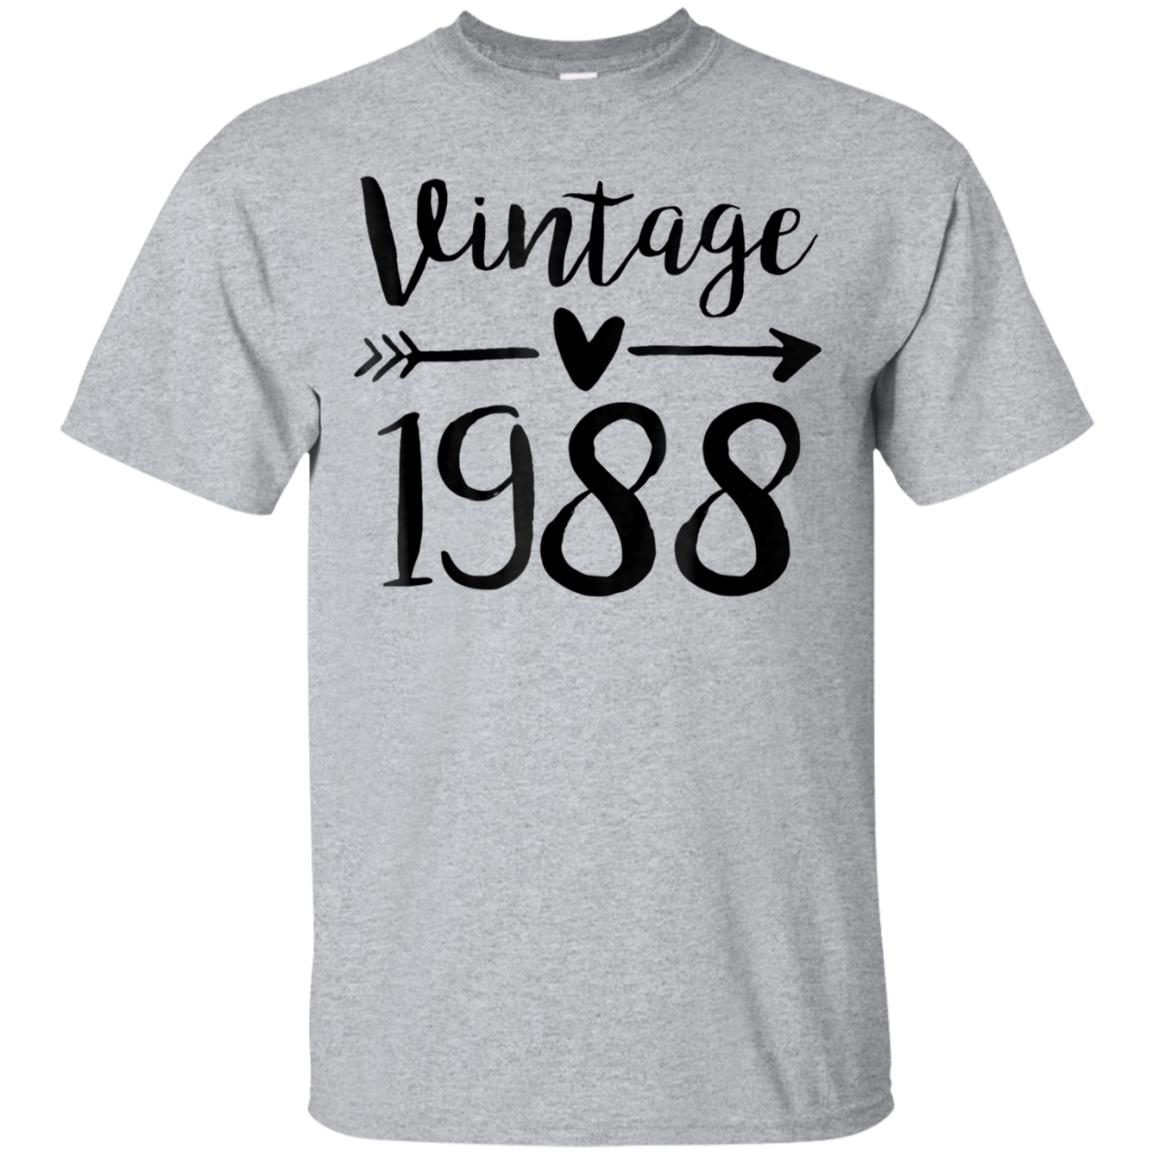 Vintage 1988 Cute Birthday Women Gift 30th Birthday Shirt 99promocode